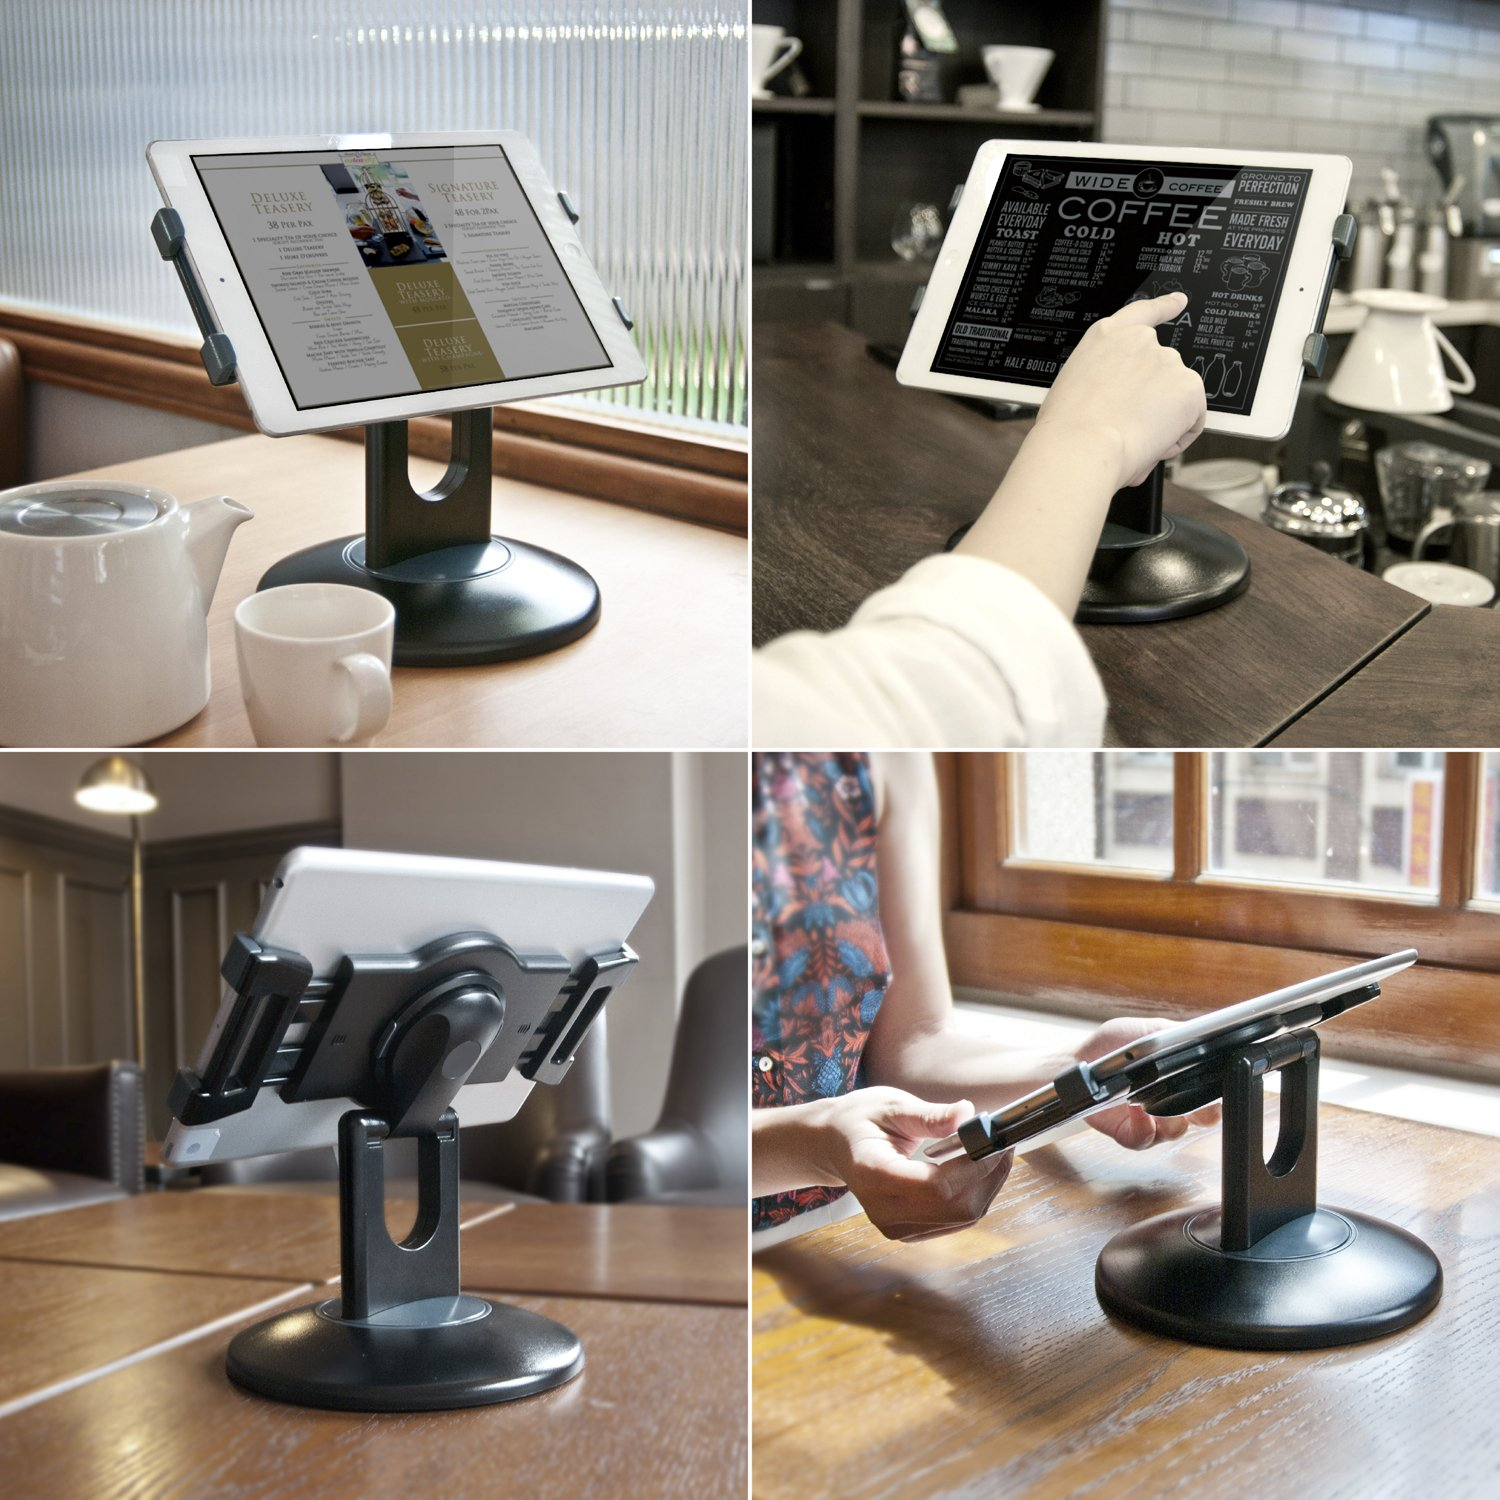 "Business Retail Tablet Stand, 360° Rotation Tablet Mount Holder for Most 7.9"" -13"" Tablet, Swivel Design Perfect for Commercial Store Office Showcase POS Reception Kitchen Countertop, Black"